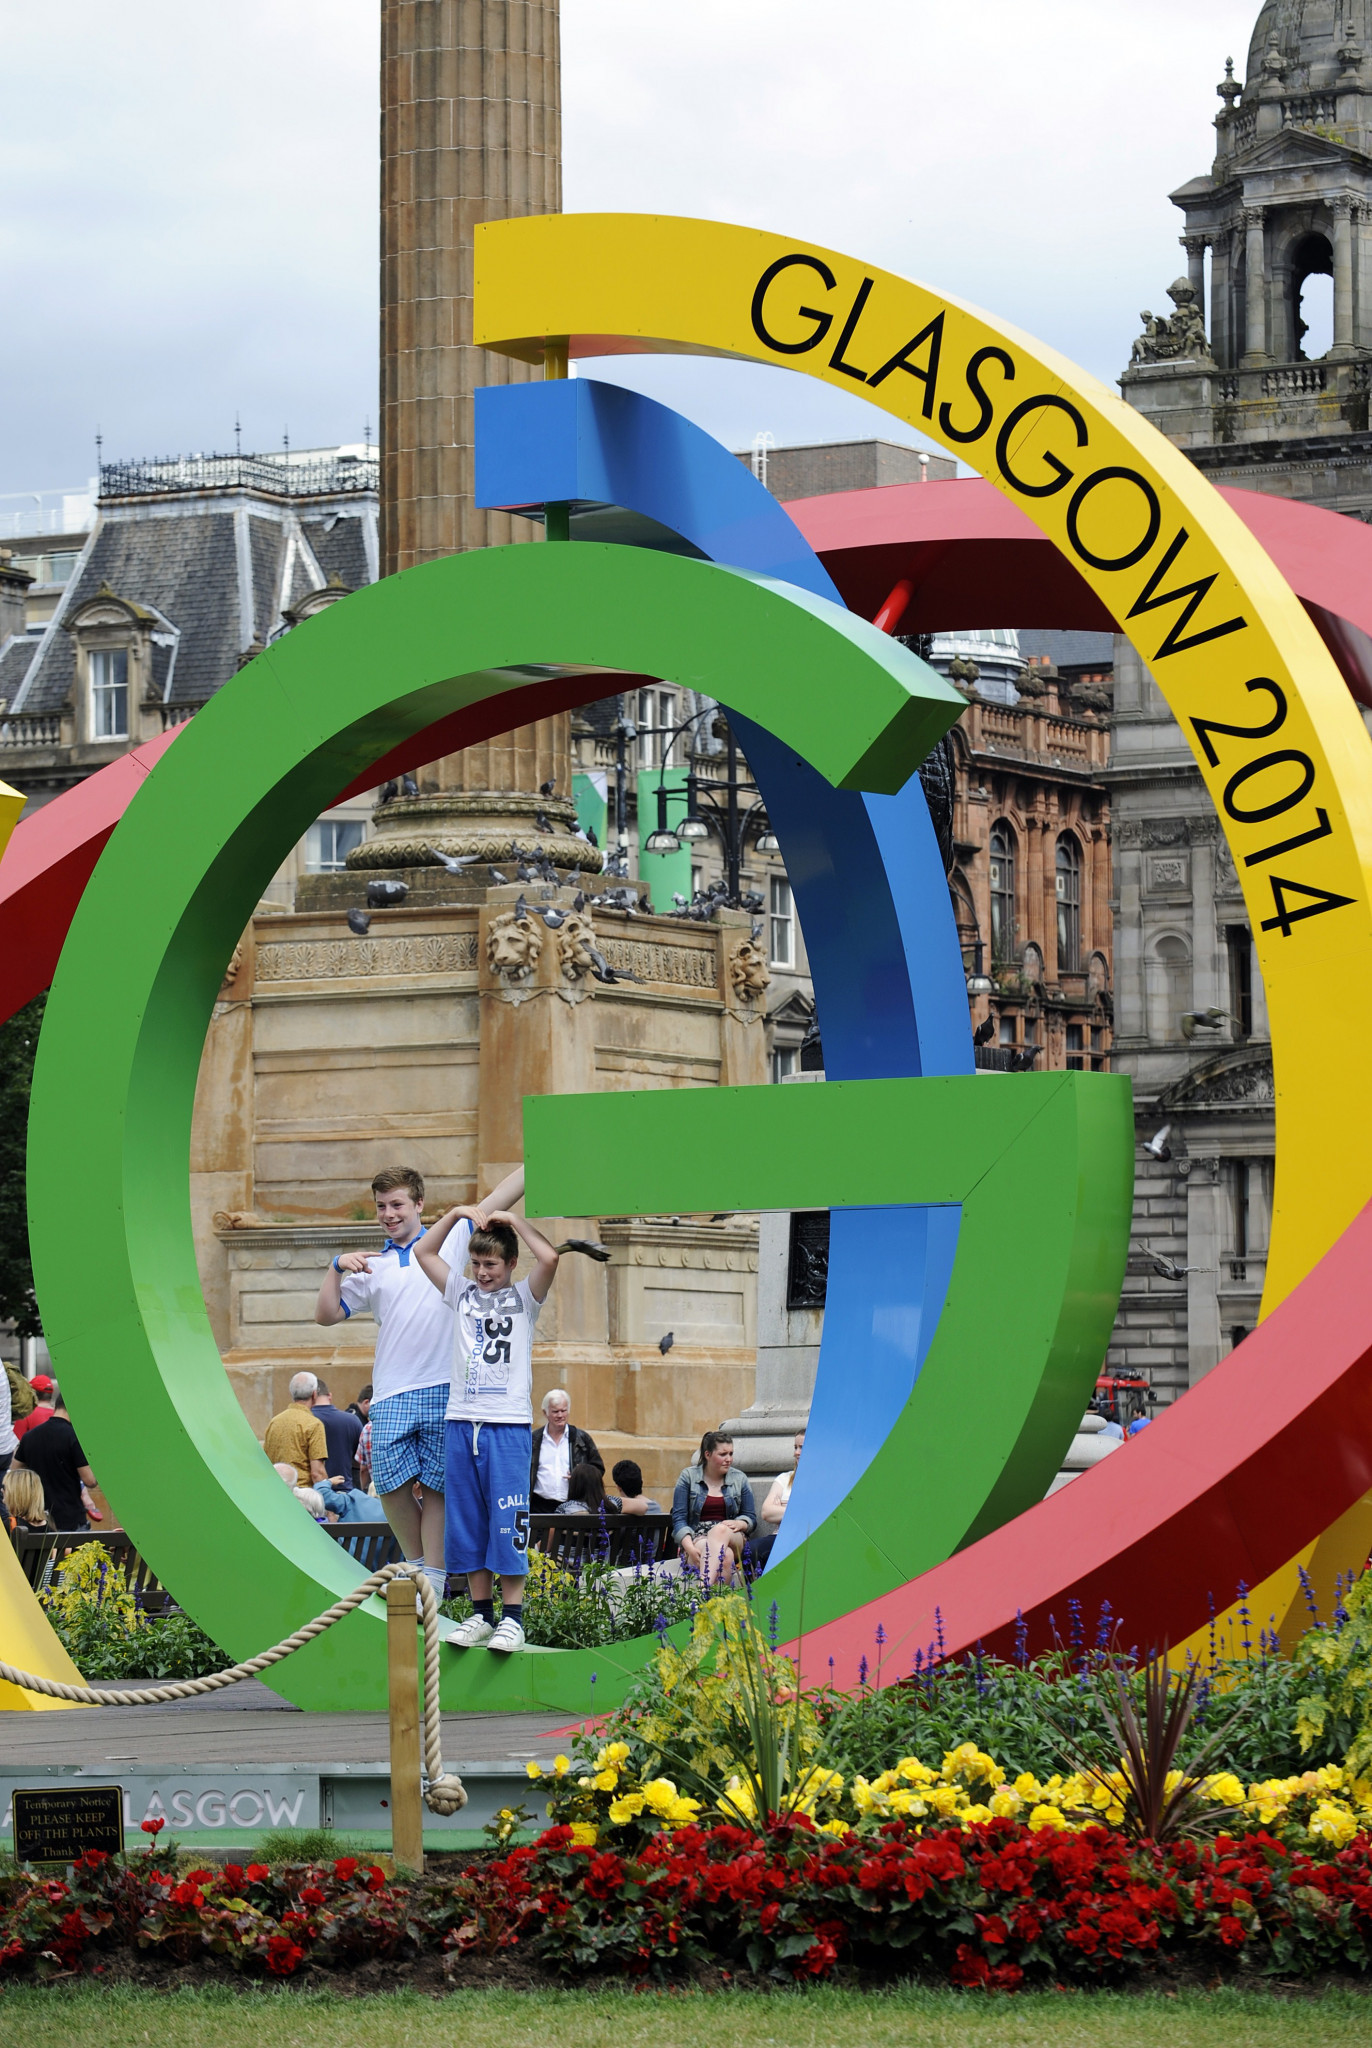 A sculpture known as 'The Big G' is pictured in Glasgow in Scotland,ahead of the start of the 2014 Commonwealth Games ©Getty Images